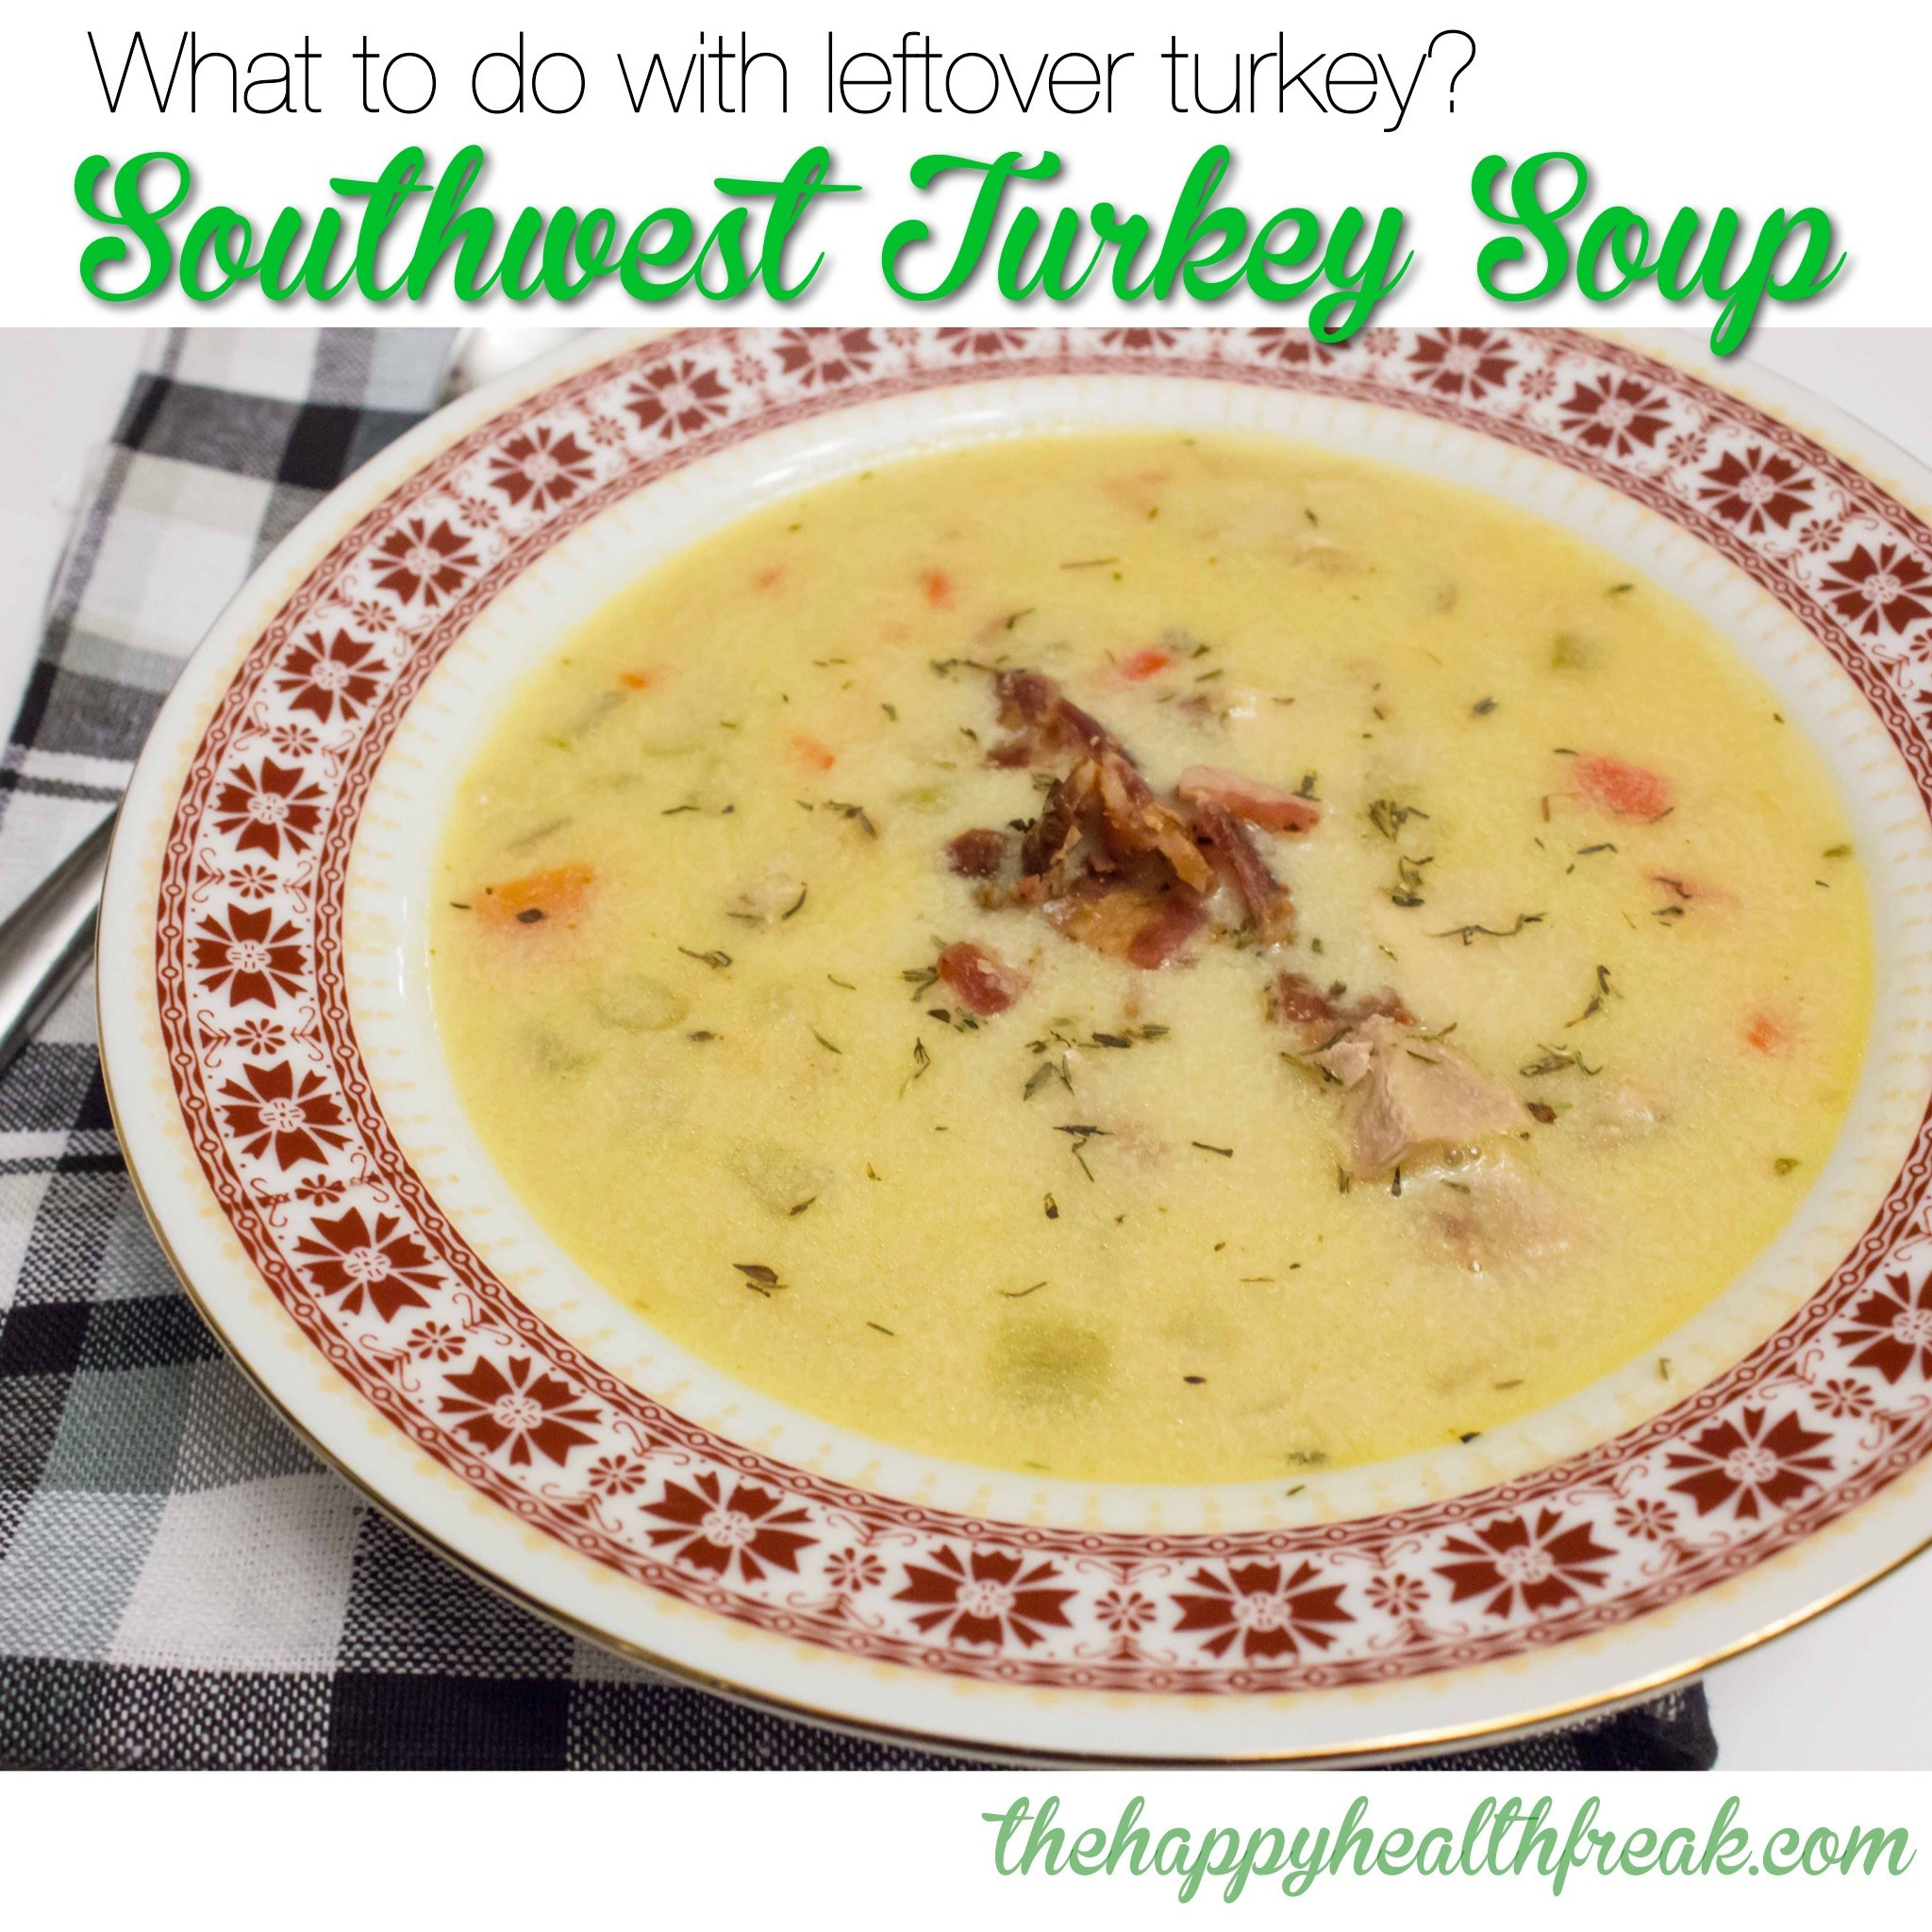 Keto Turkey Soup  Spice up that boring leftover turkey soup The Happy